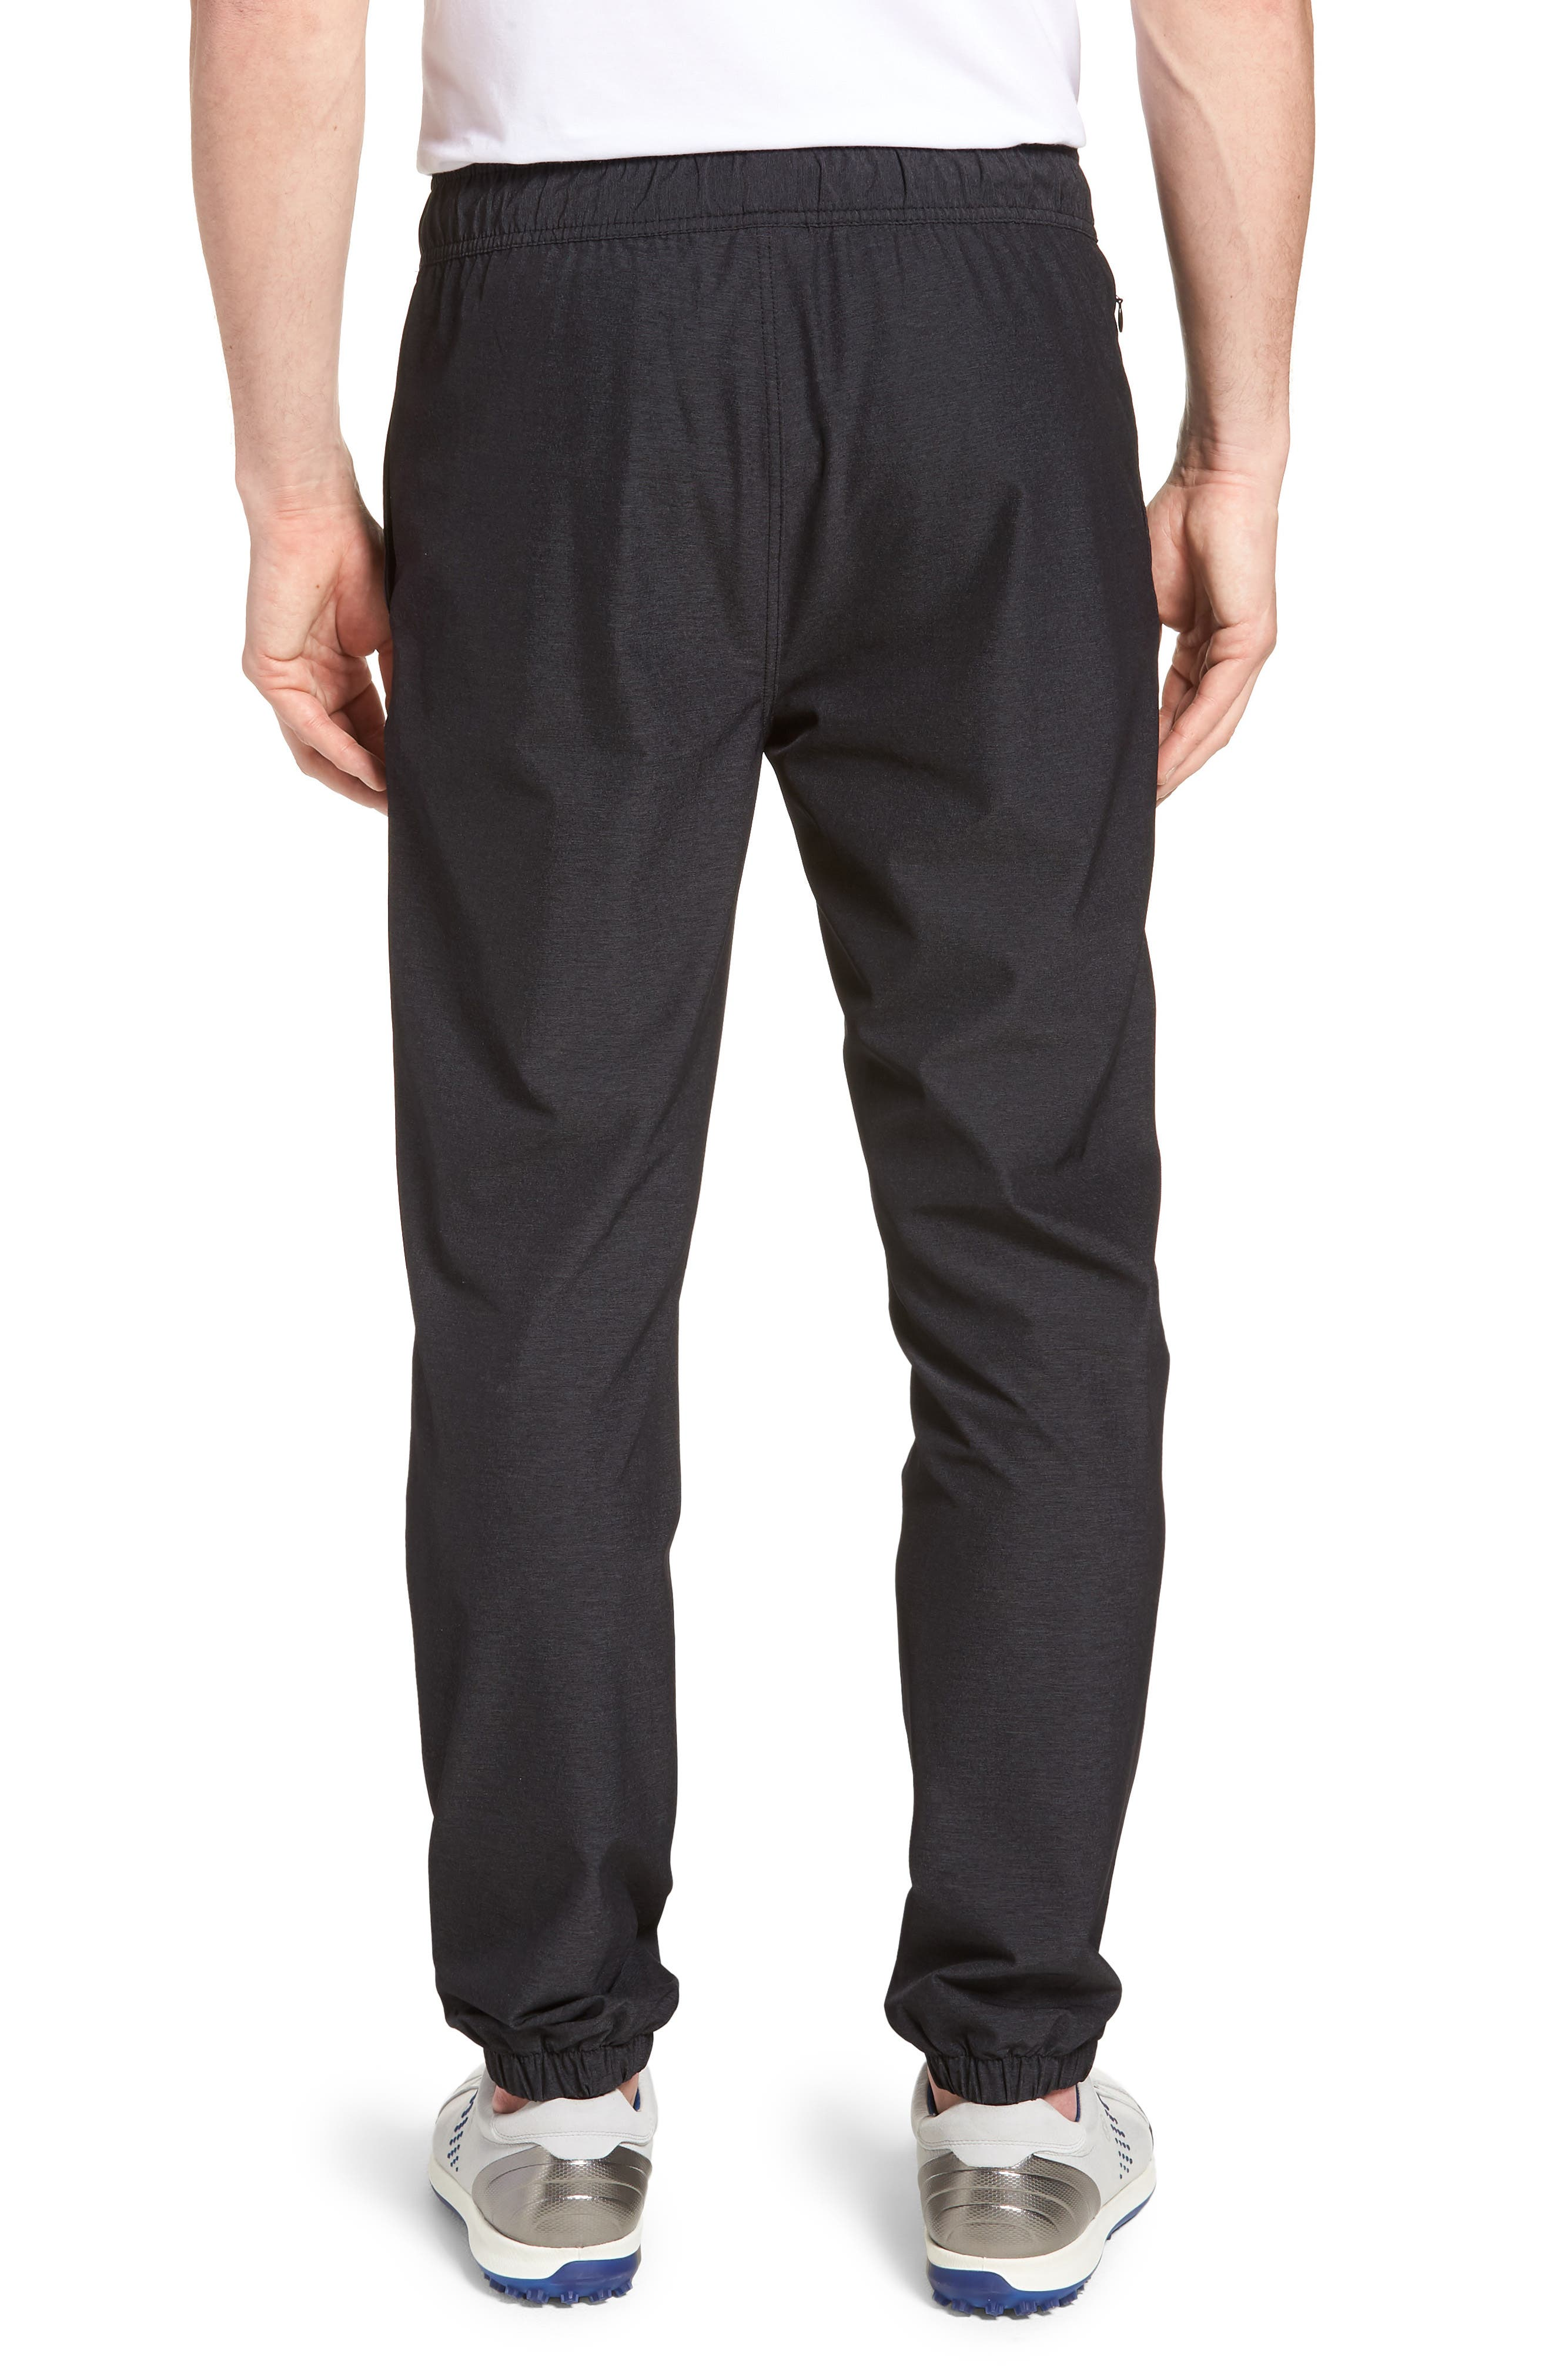 Relay Lounge Pants,                             Alternate thumbnail 2, color,